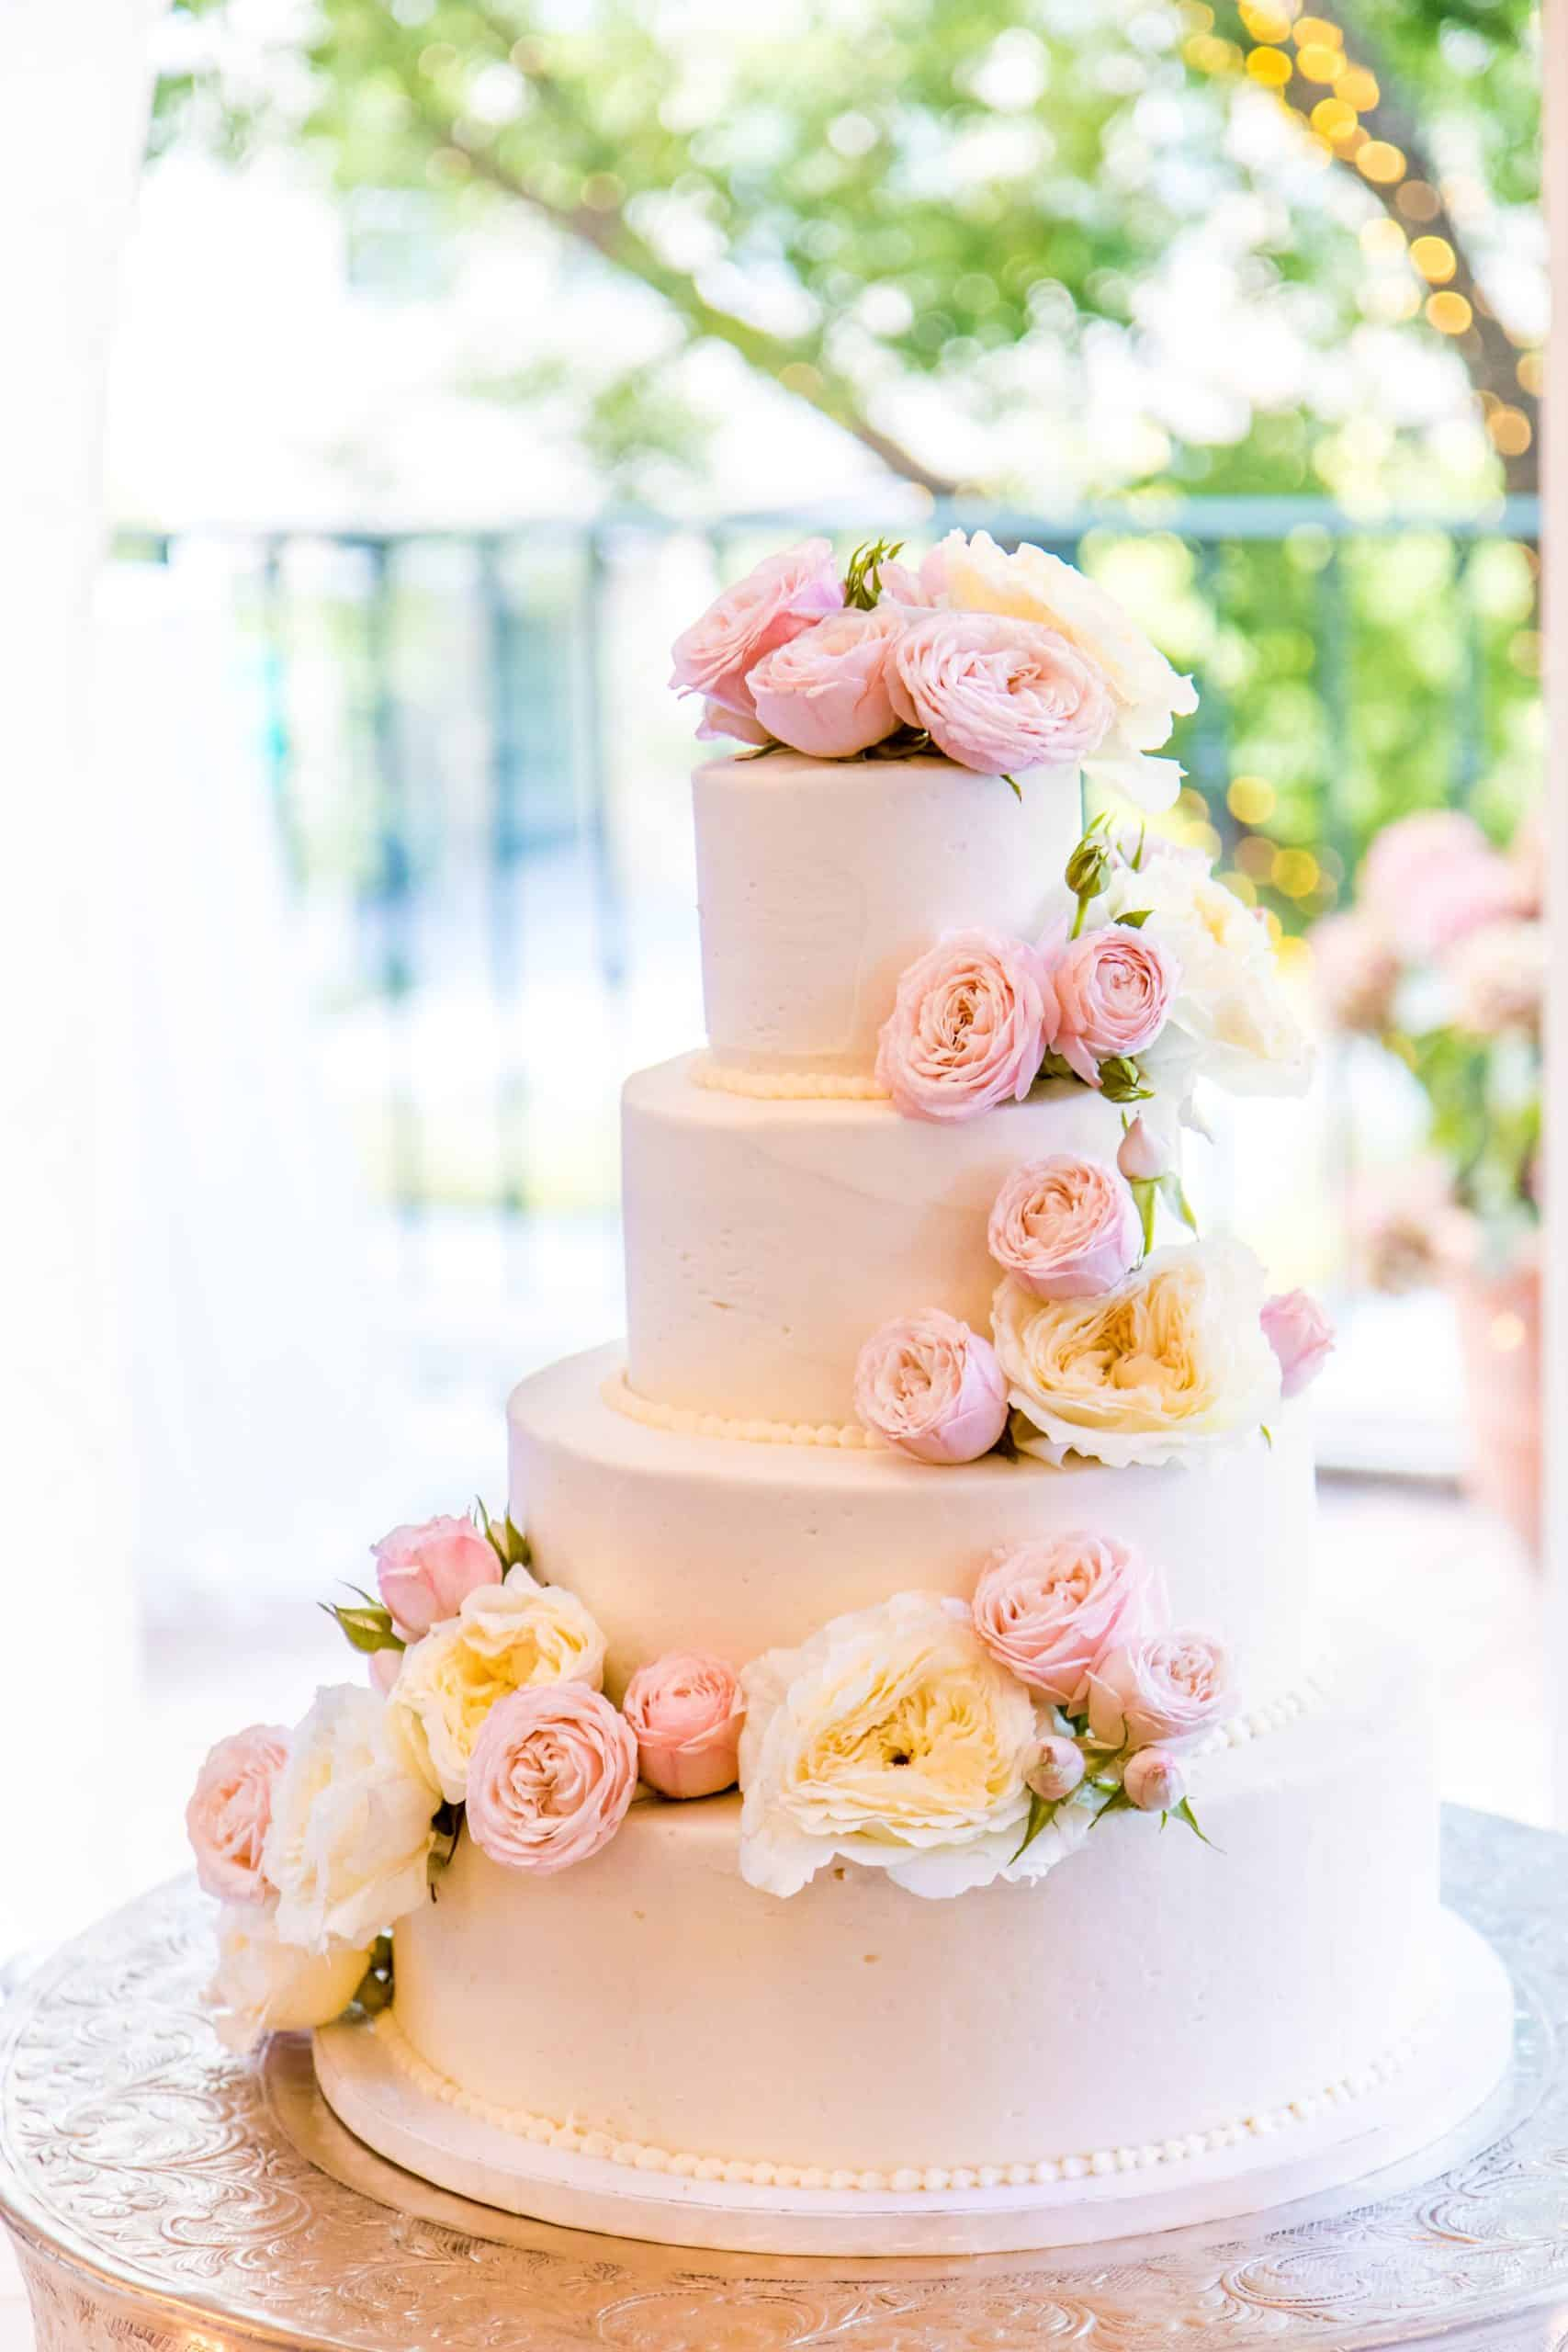 Some Weird Facts About Wedding Cake Designs